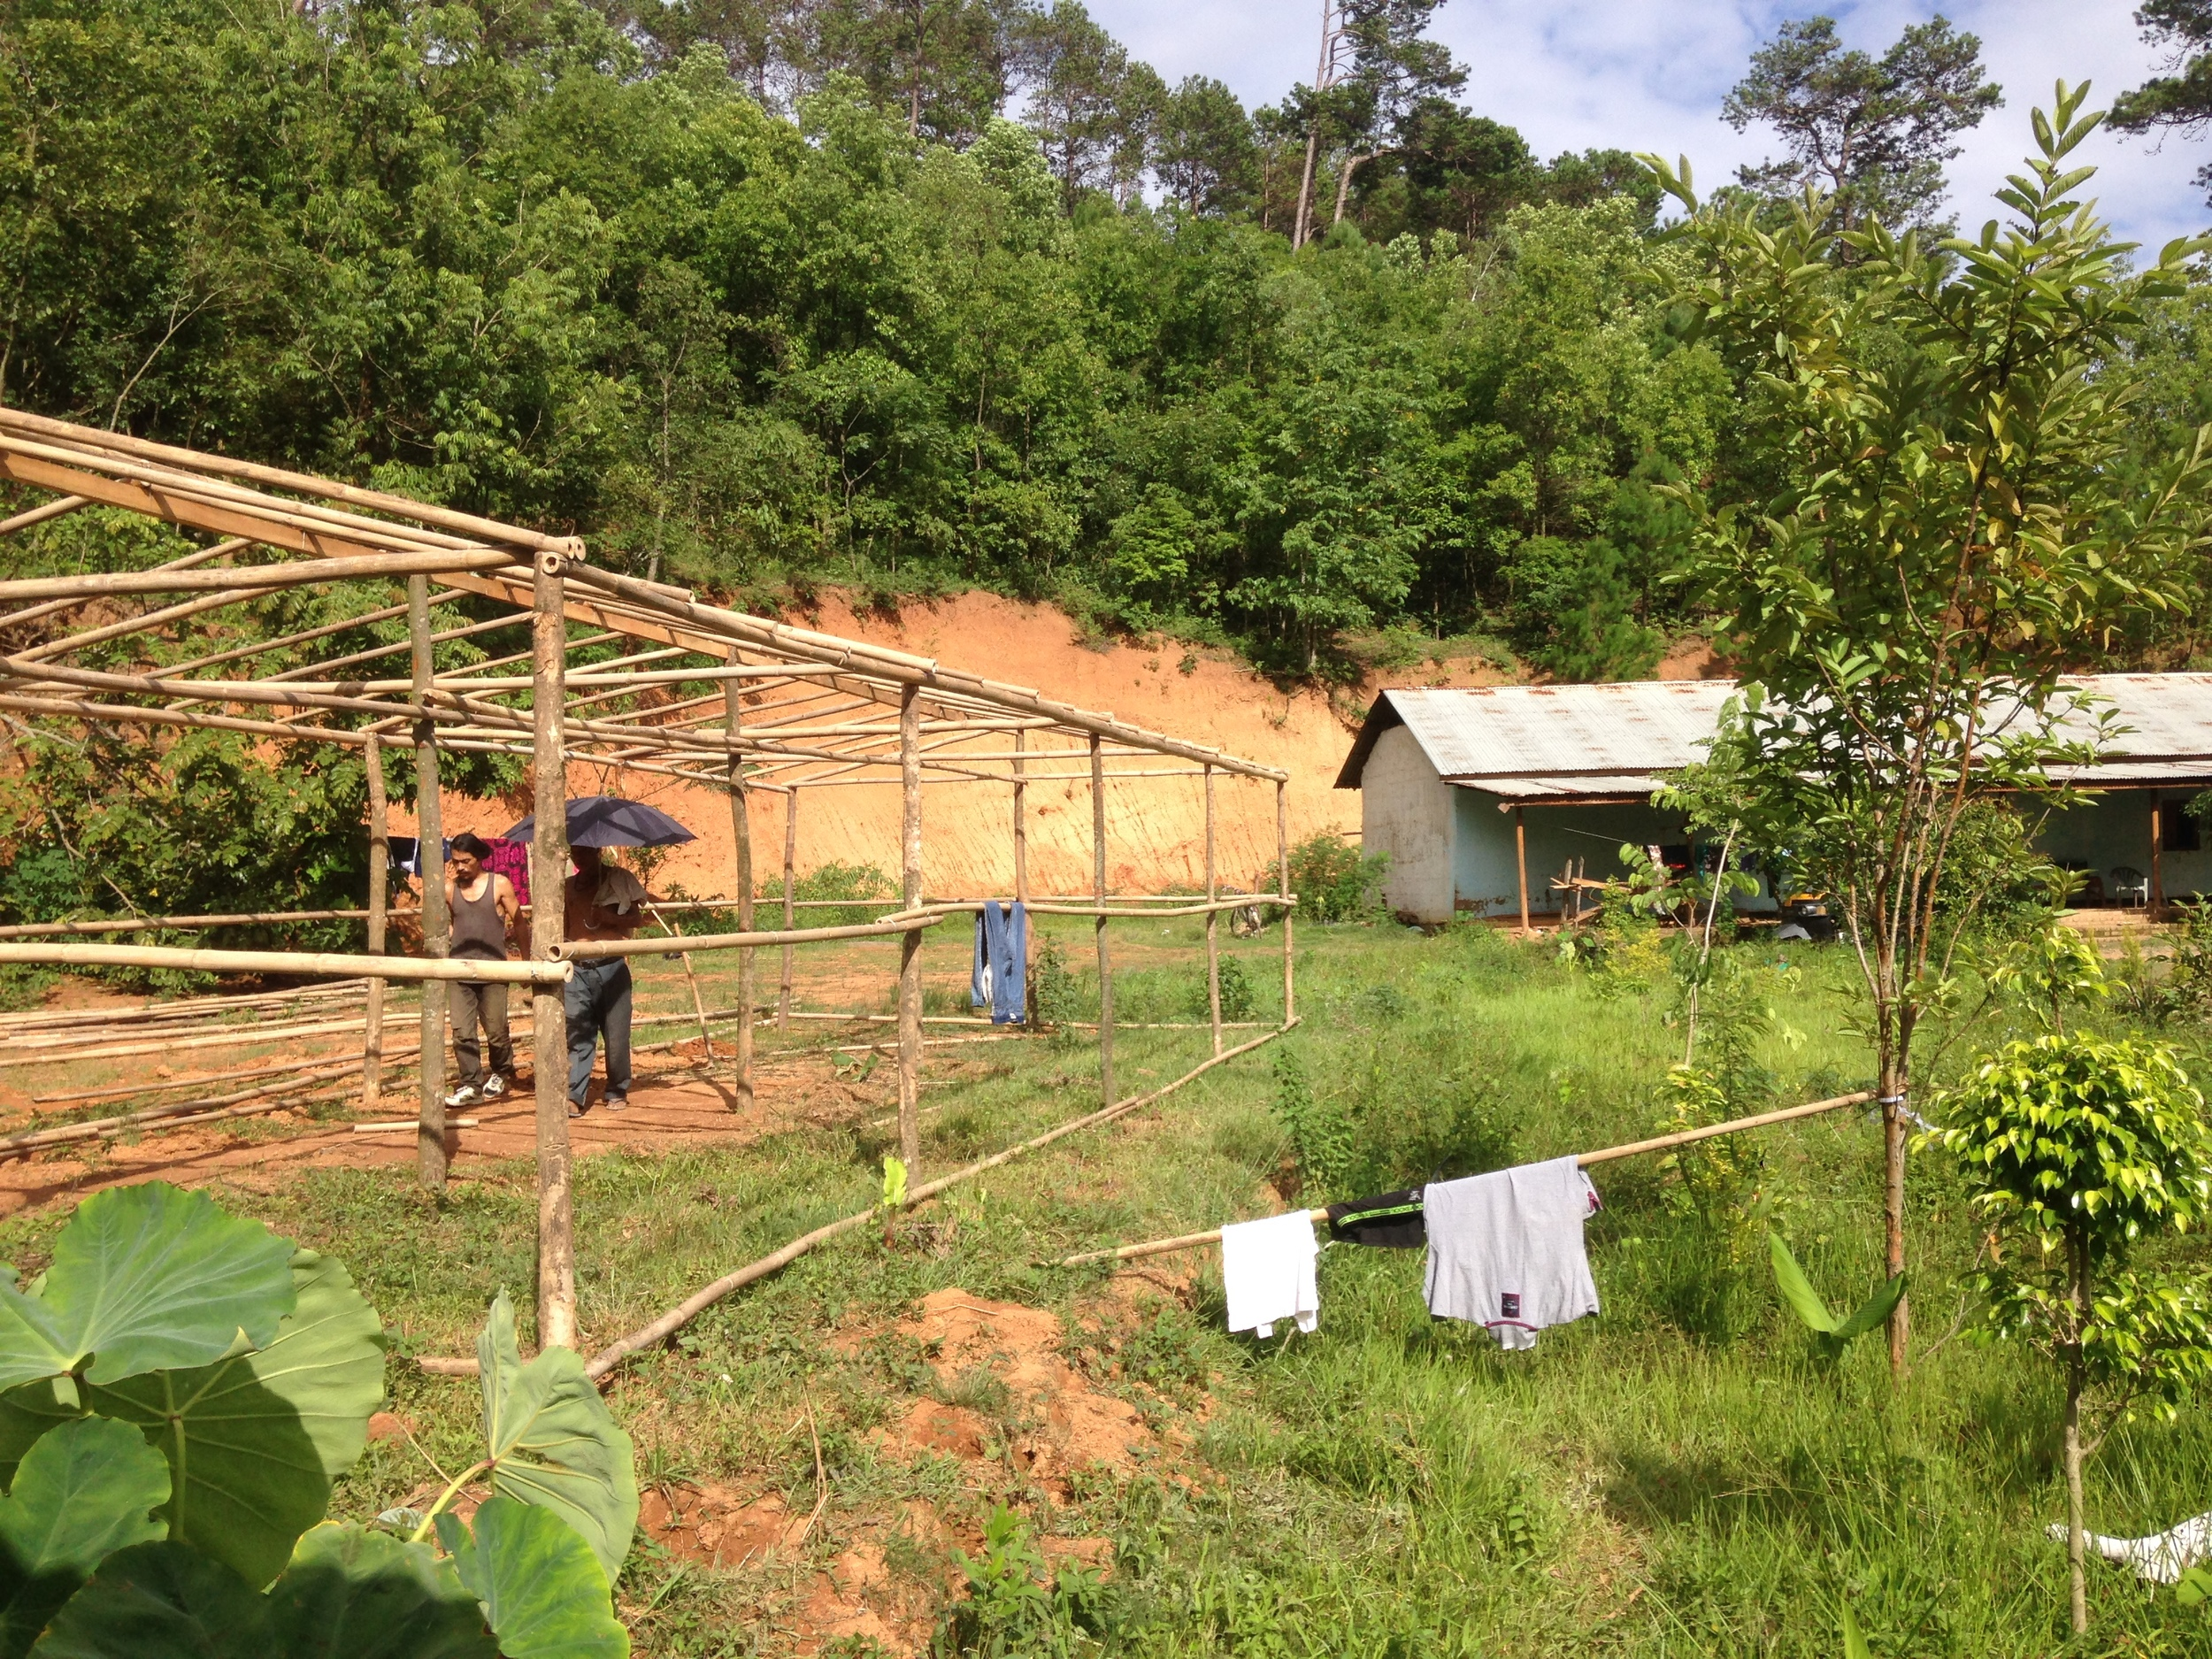 Constructing the greenhouse.